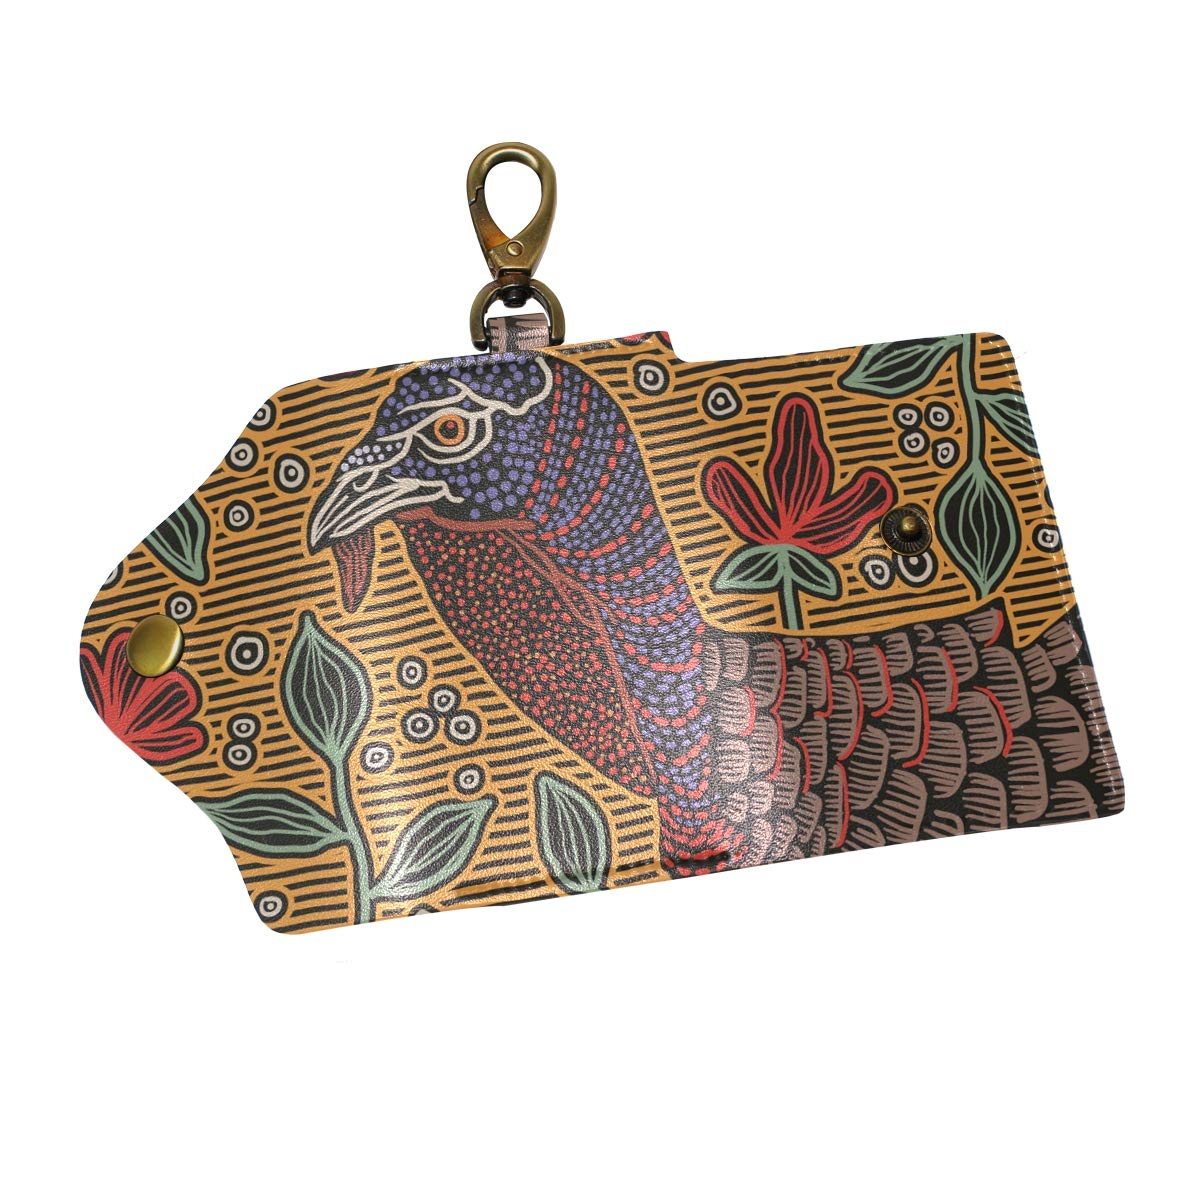 KEAKIA Wild Turkey Abstract Leather Key Case Wallets Tri-fold Key Holder Keychains with 6 Hooks 2 Slot Snap Closure for Men Women